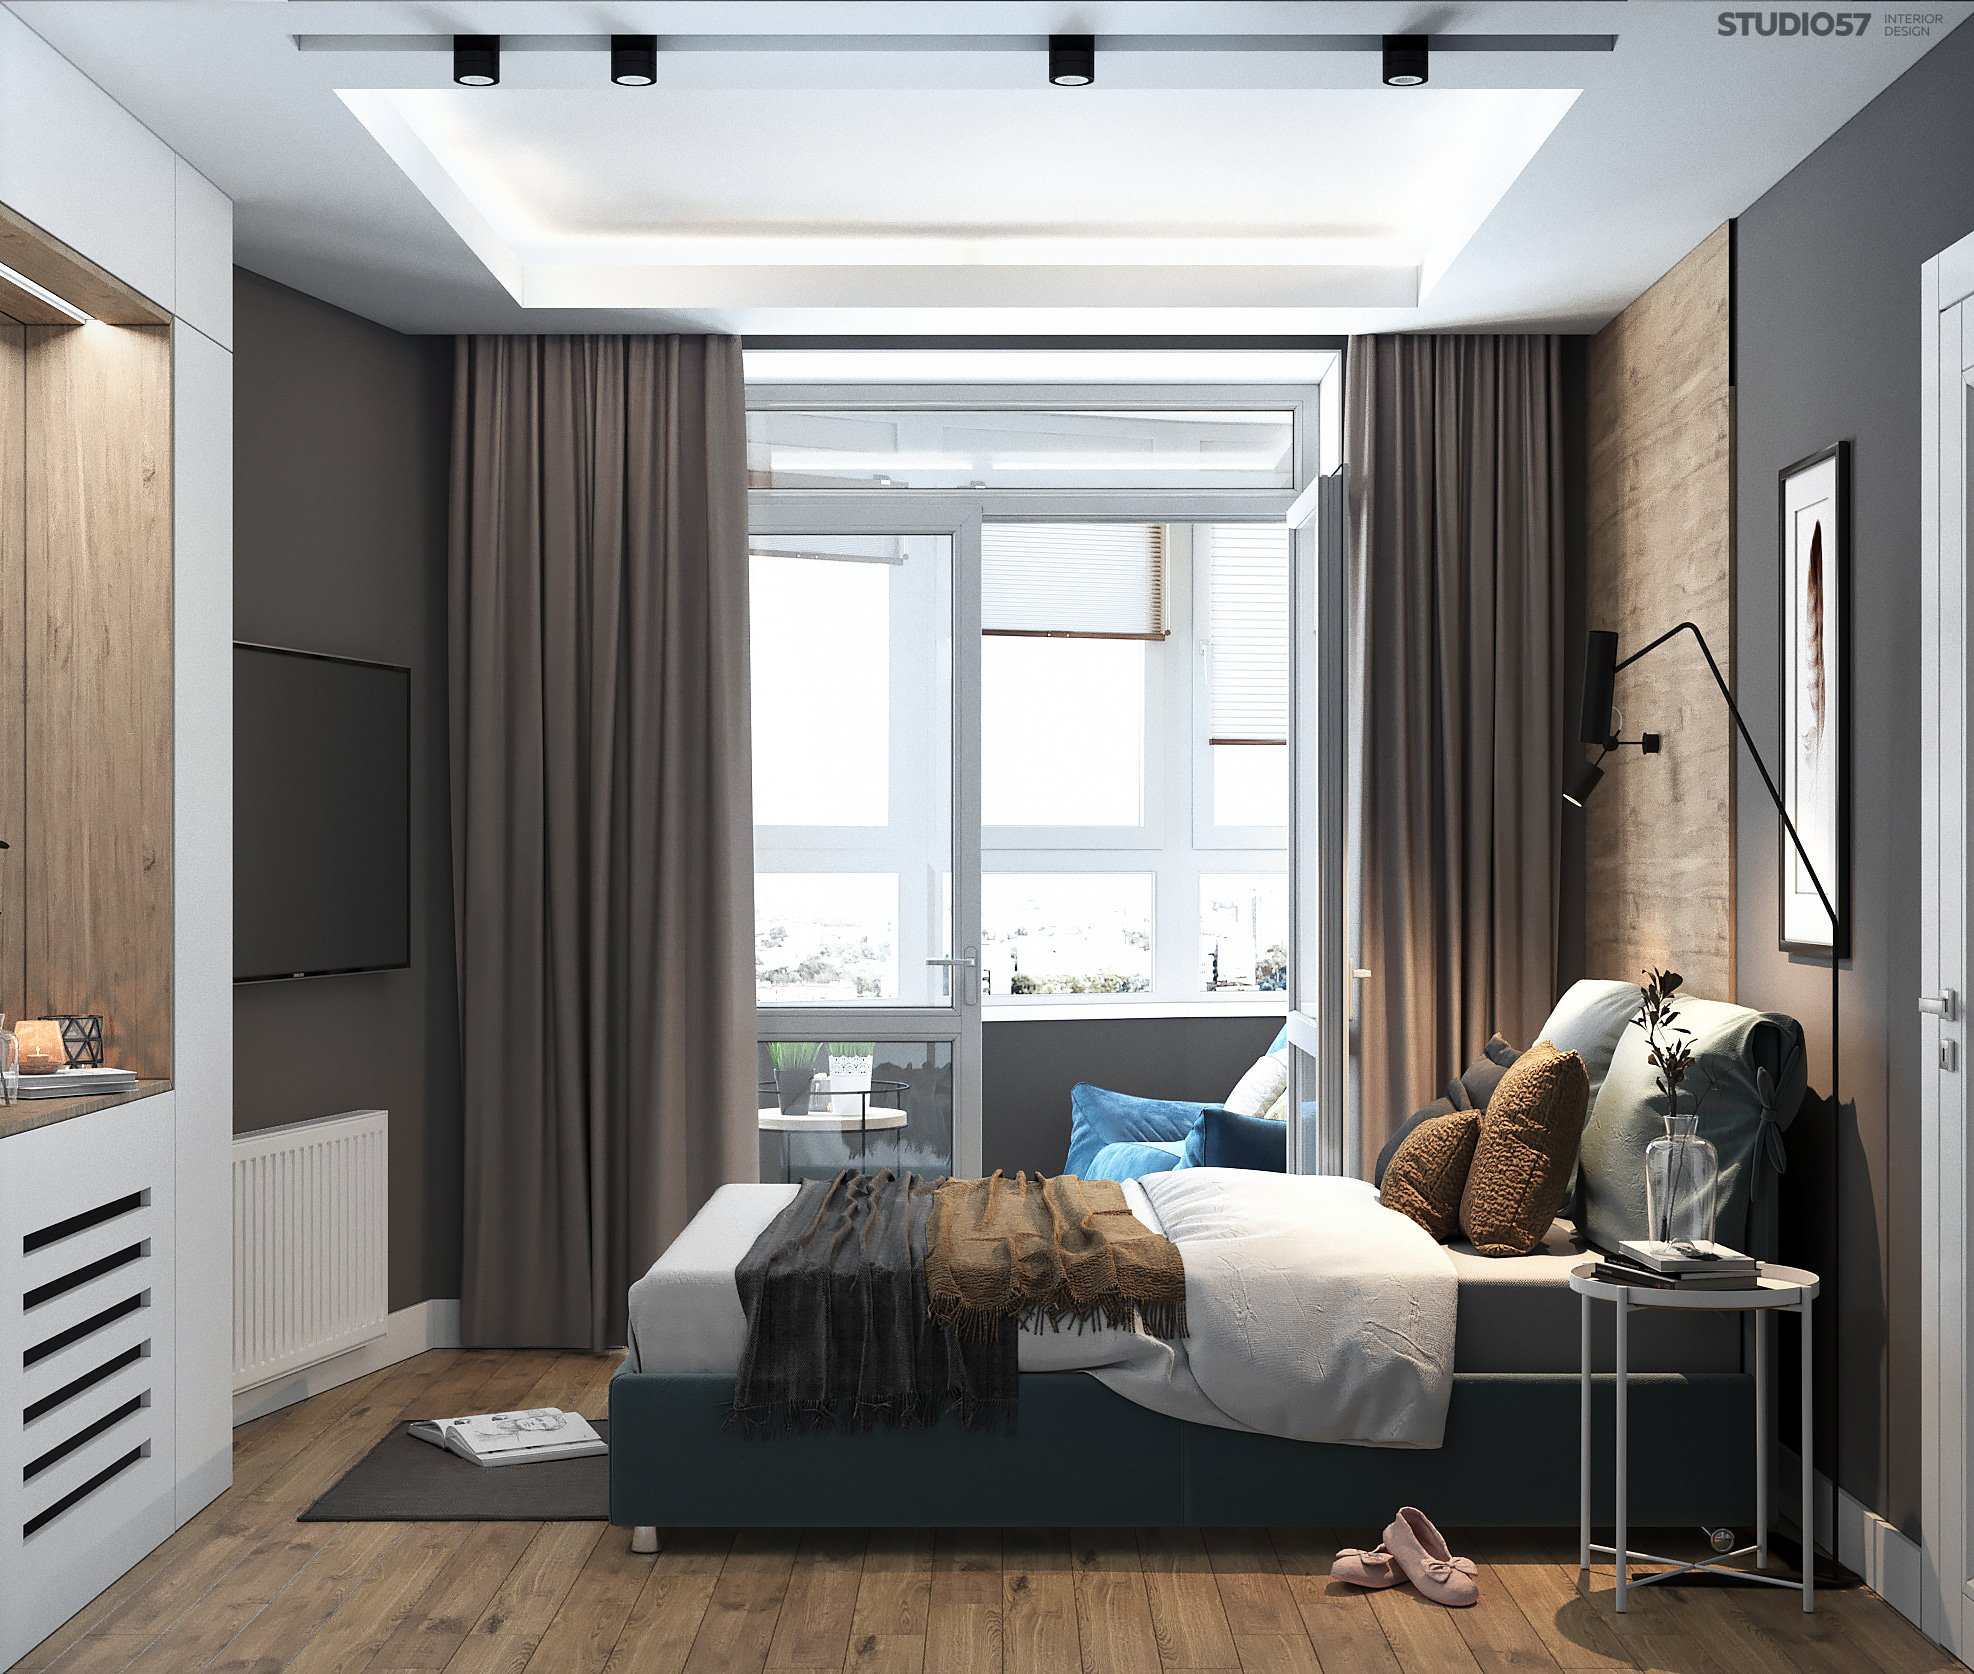 Bedroom in shades of gray picture